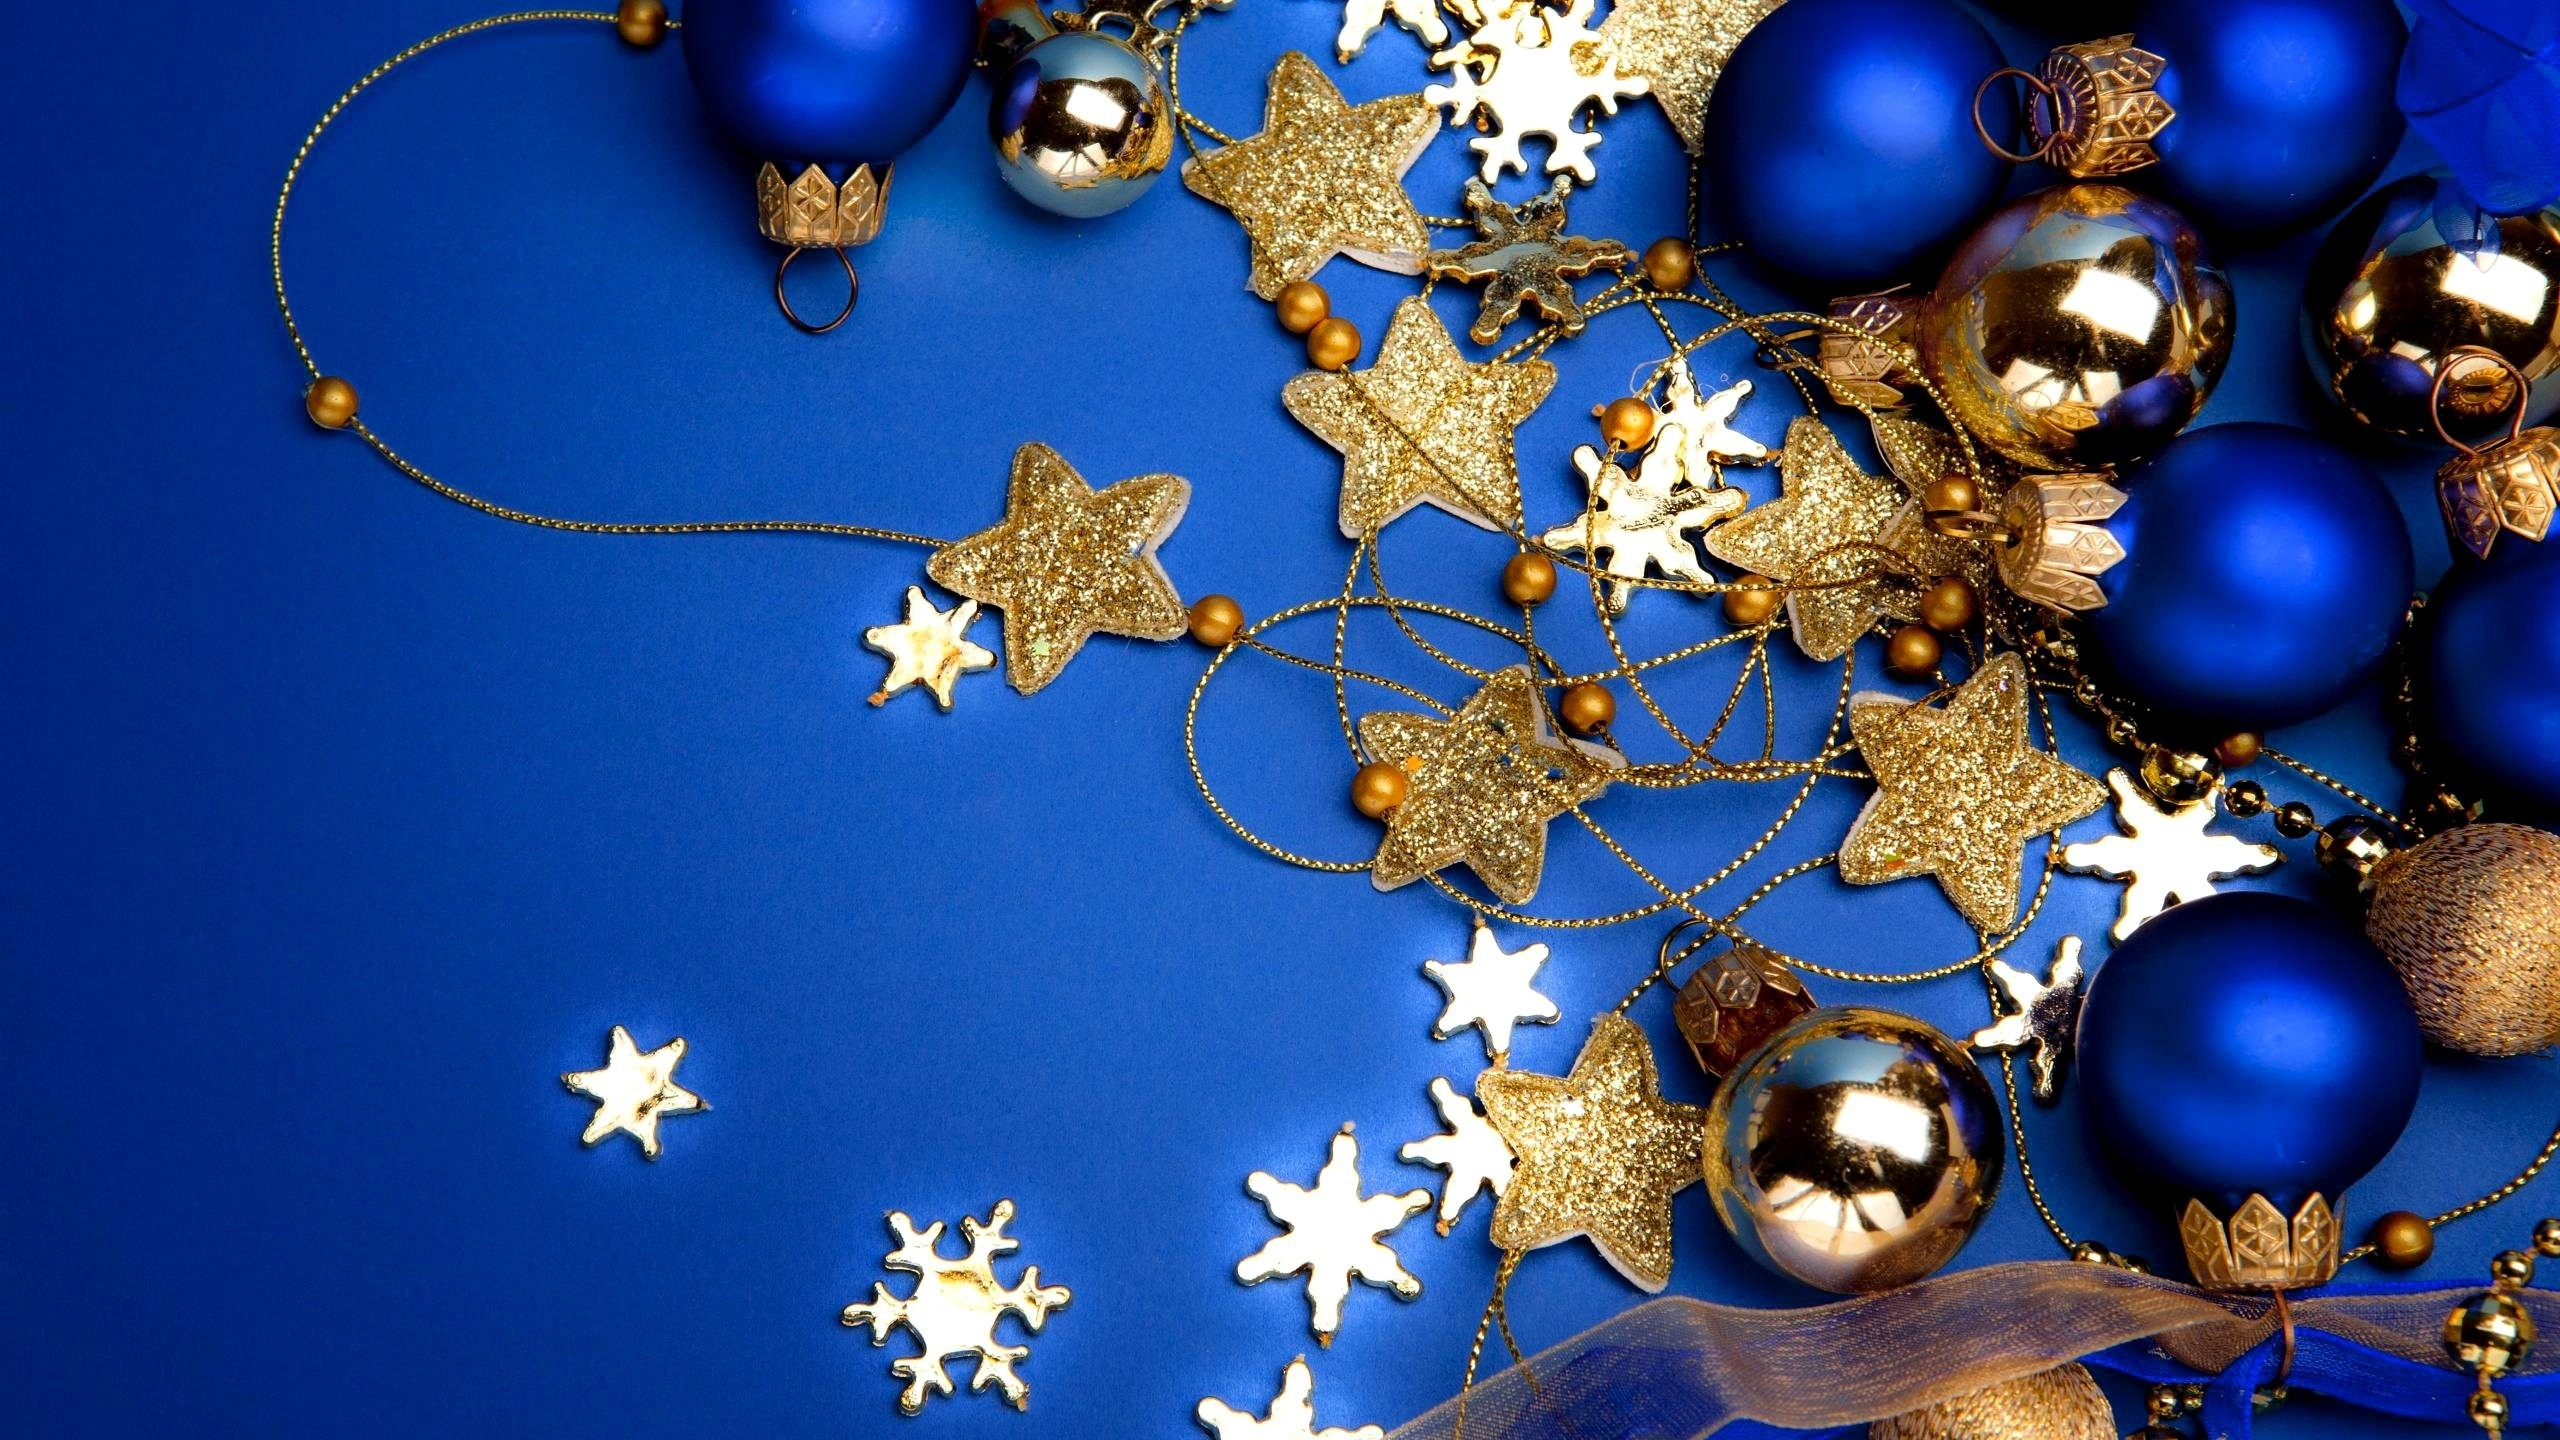 … blue christmas hd wallpaper hd wallpapers gifs backgrounds images …